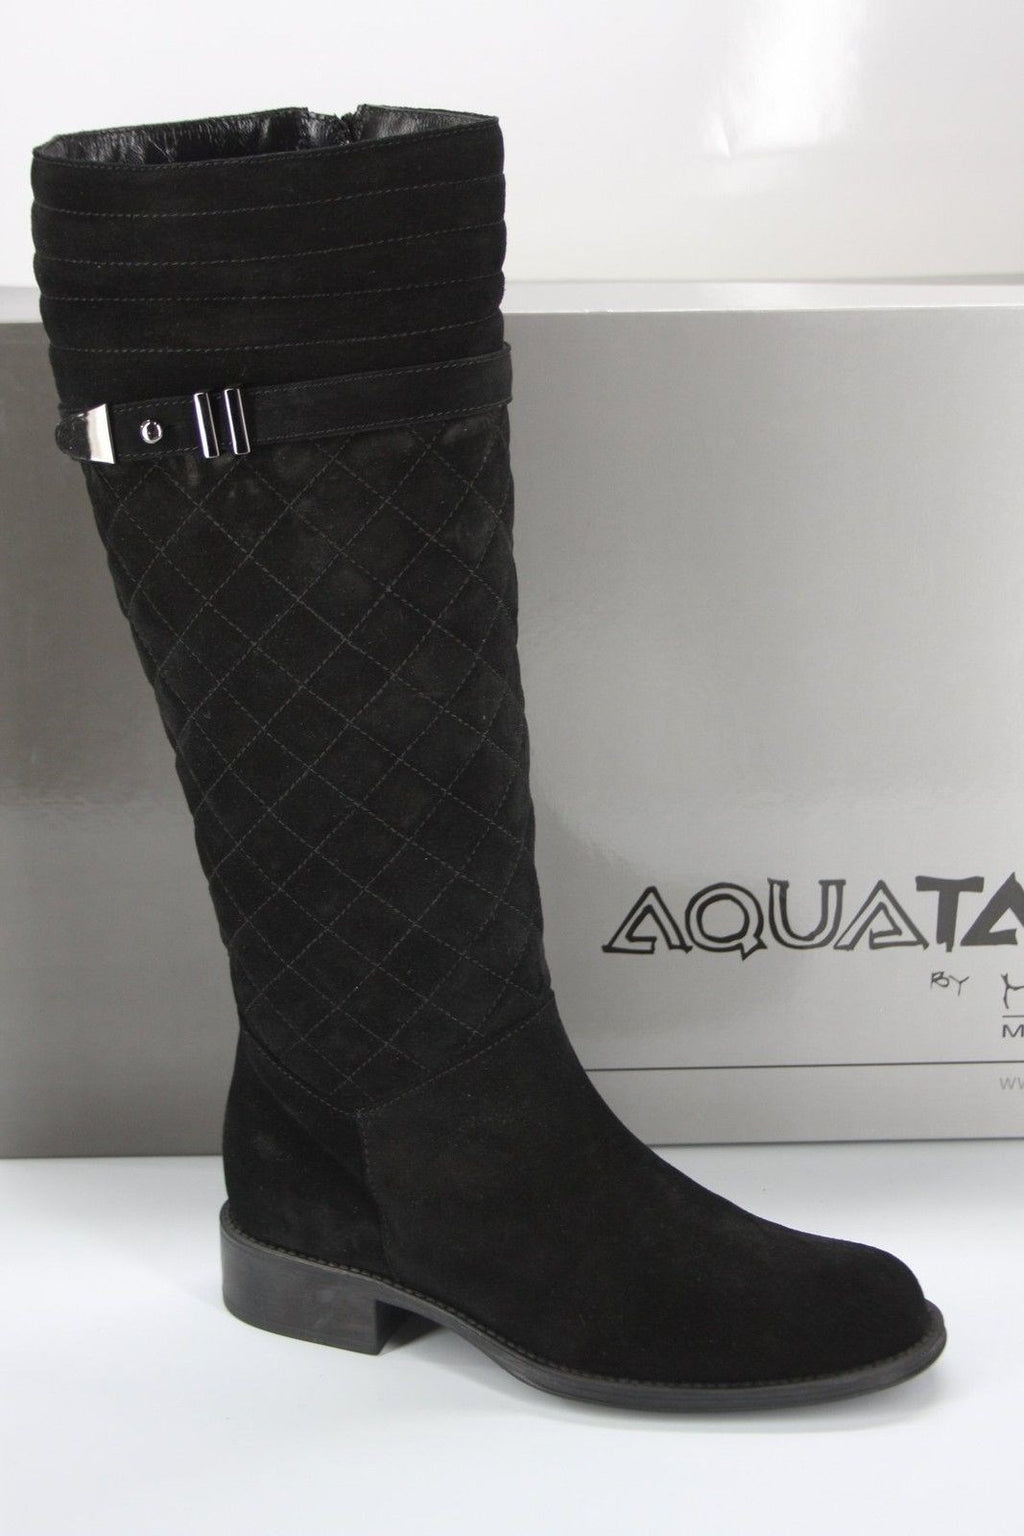 Aquatalia by Marvin K Black Suede Unveil Quilted Riding Boot Size 6.5 NIB Italy